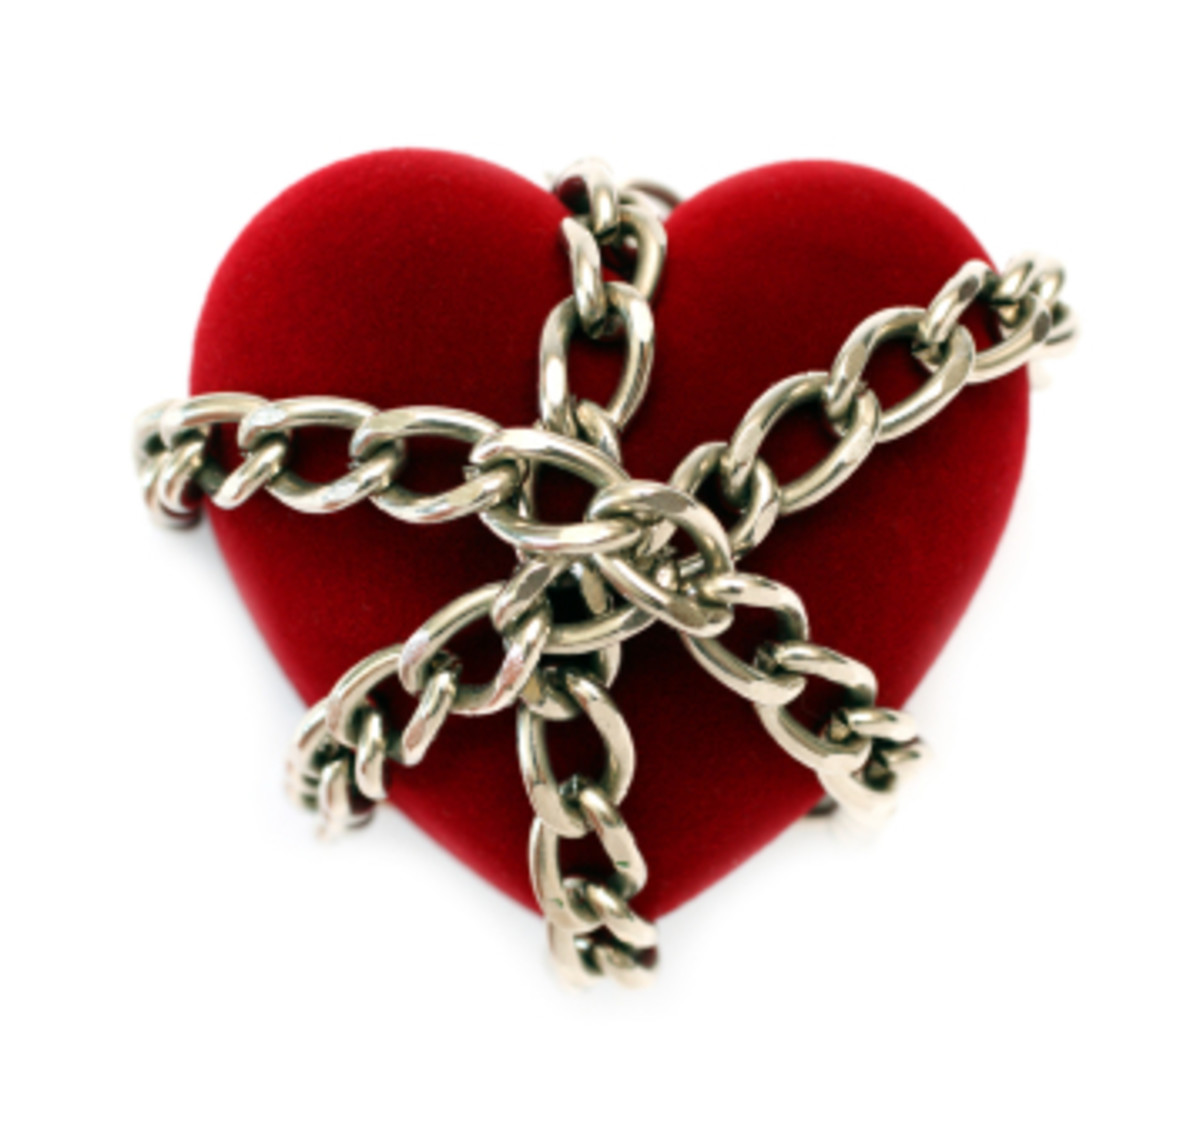 Try not to get your heart chained up, it has a cycle to complete.